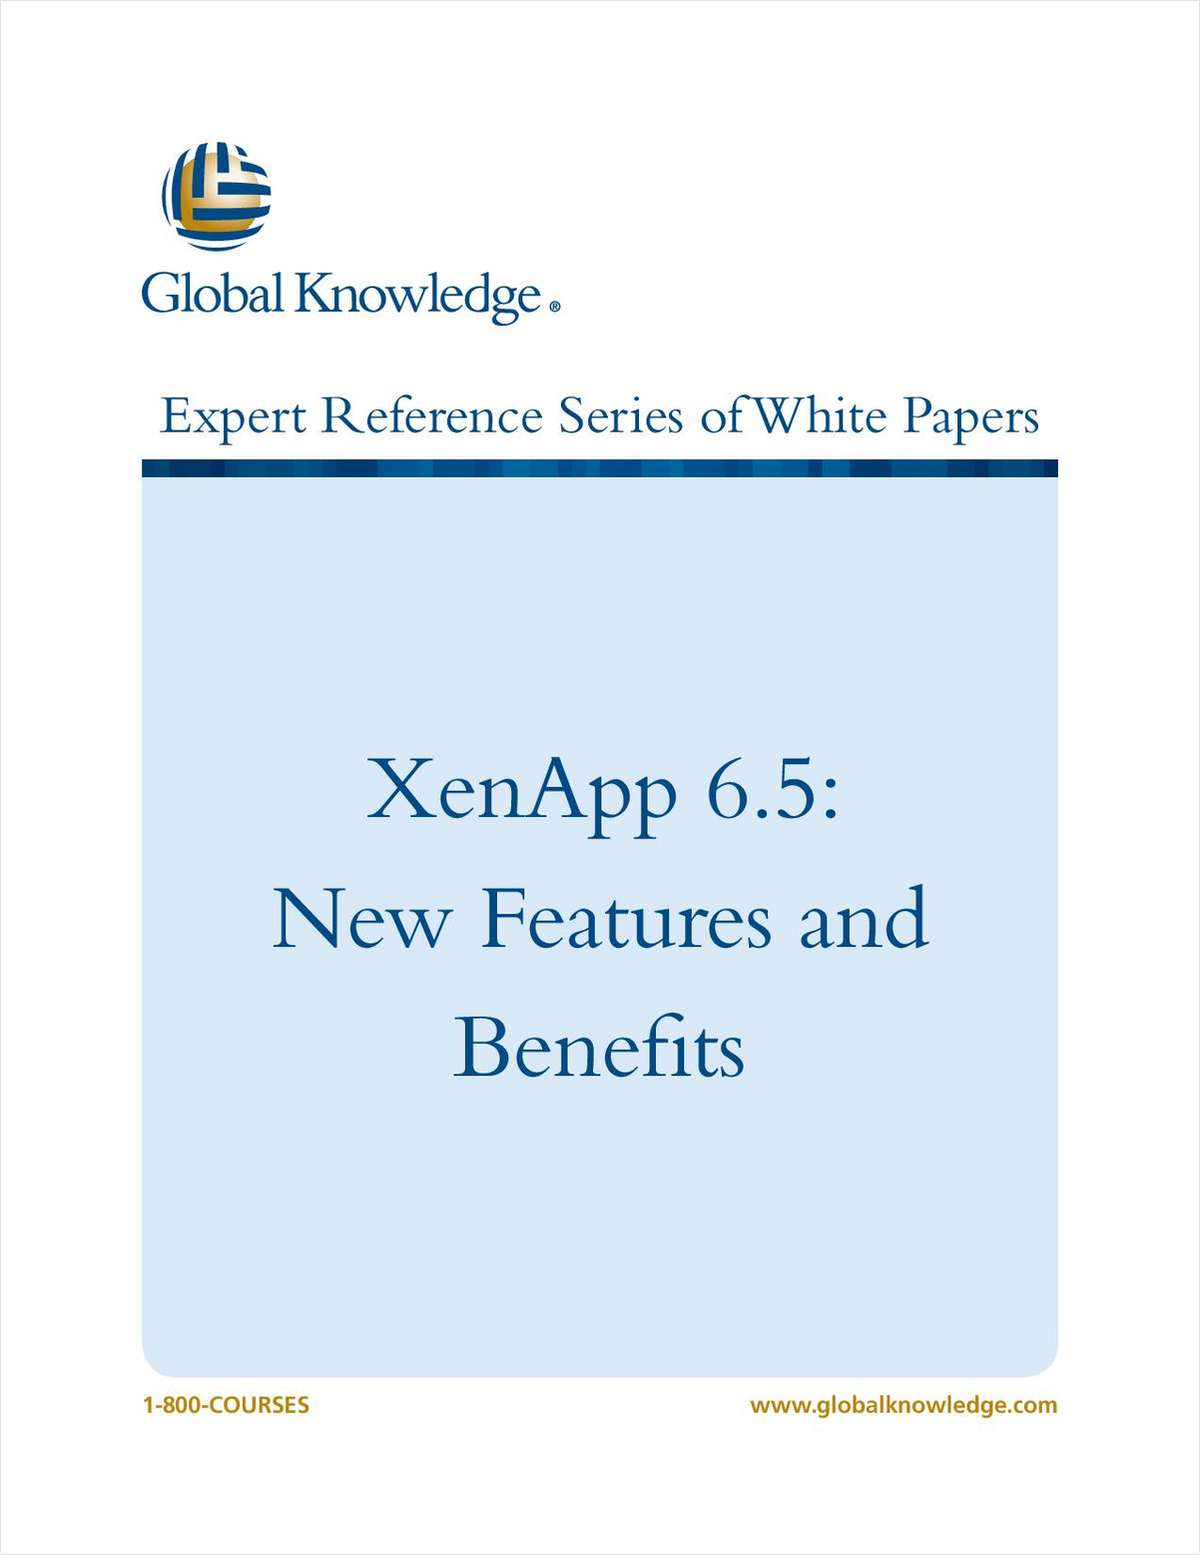 New Features and Benefits of XenApp 6.5